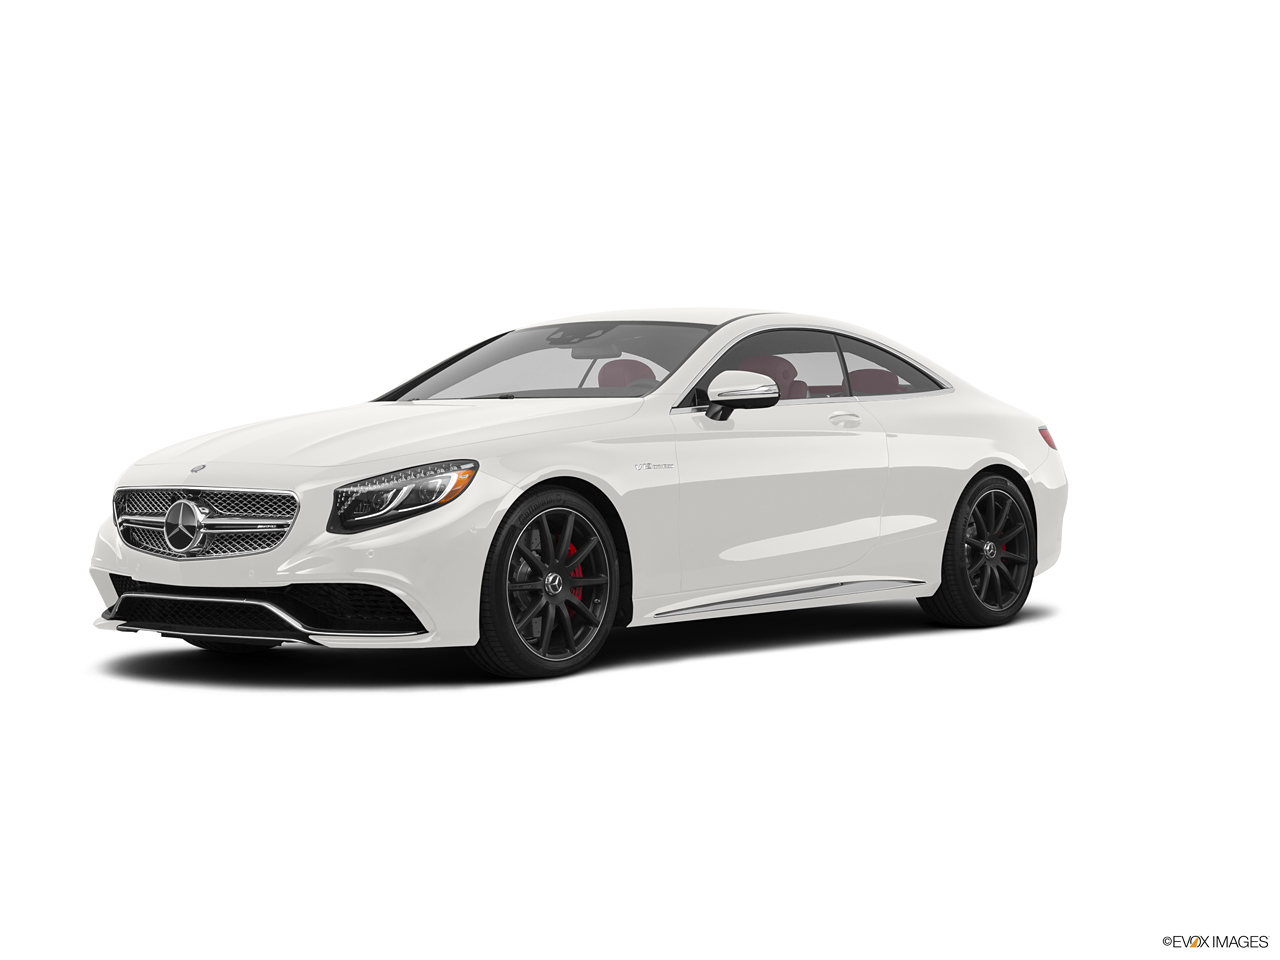 Car pictures list for mercedes benz s 65 amg coupe 2016 6 for Mercedes benz coupes list